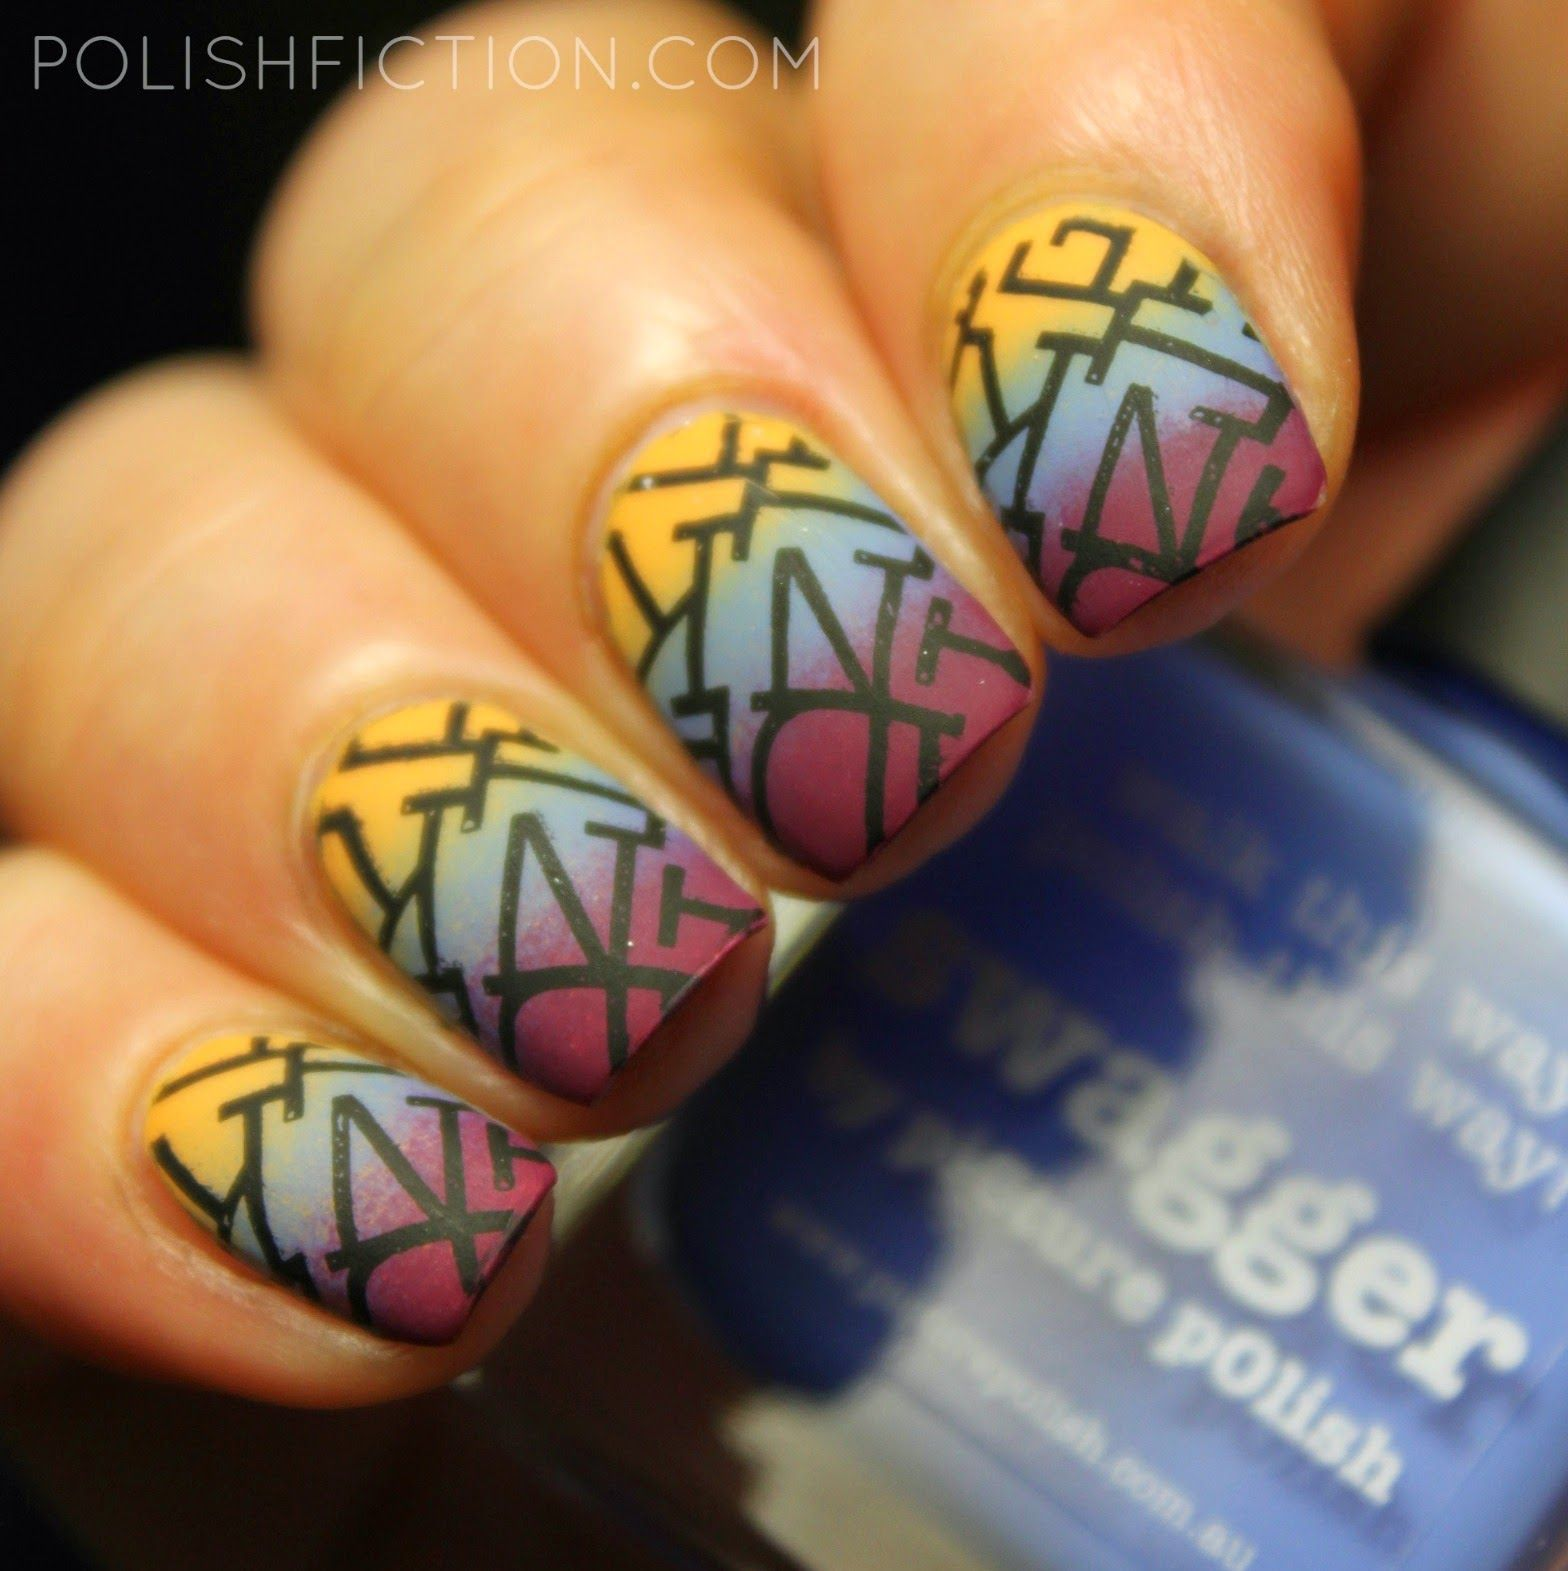 piCture pOlish Urban Shades gradient with stamping